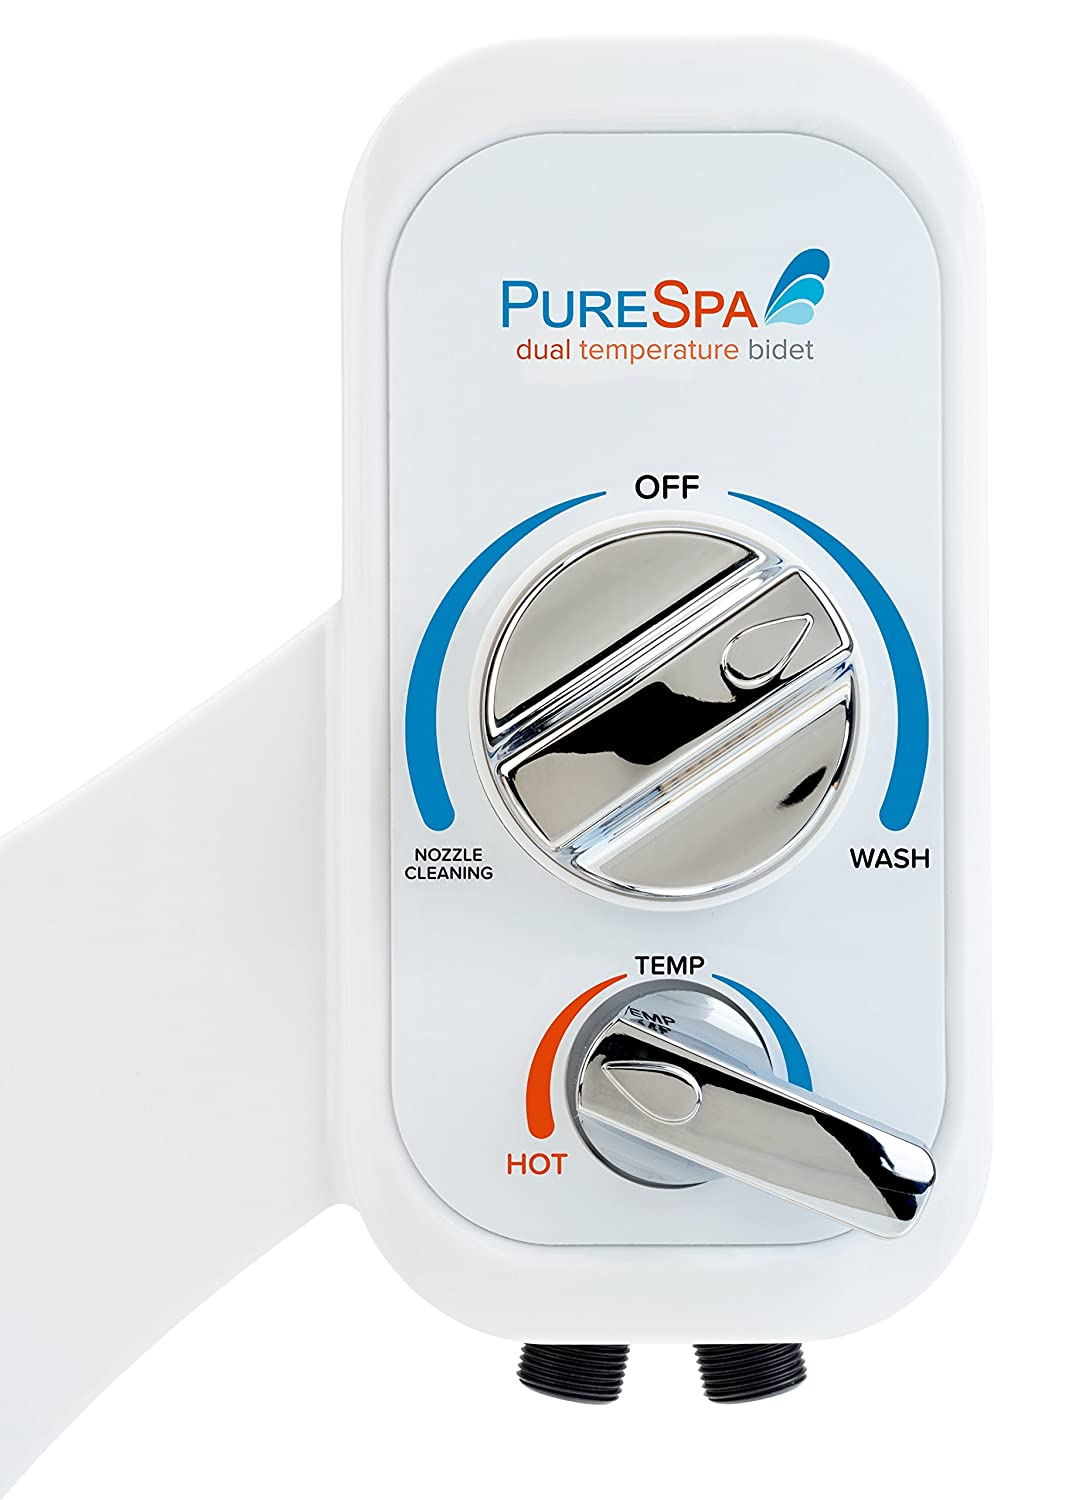 a8152013ab Brondell PSW-75 PureSpa Dual Warm Water Non-Electric Bidet Attachment with  Self-Cleaning Nozzles